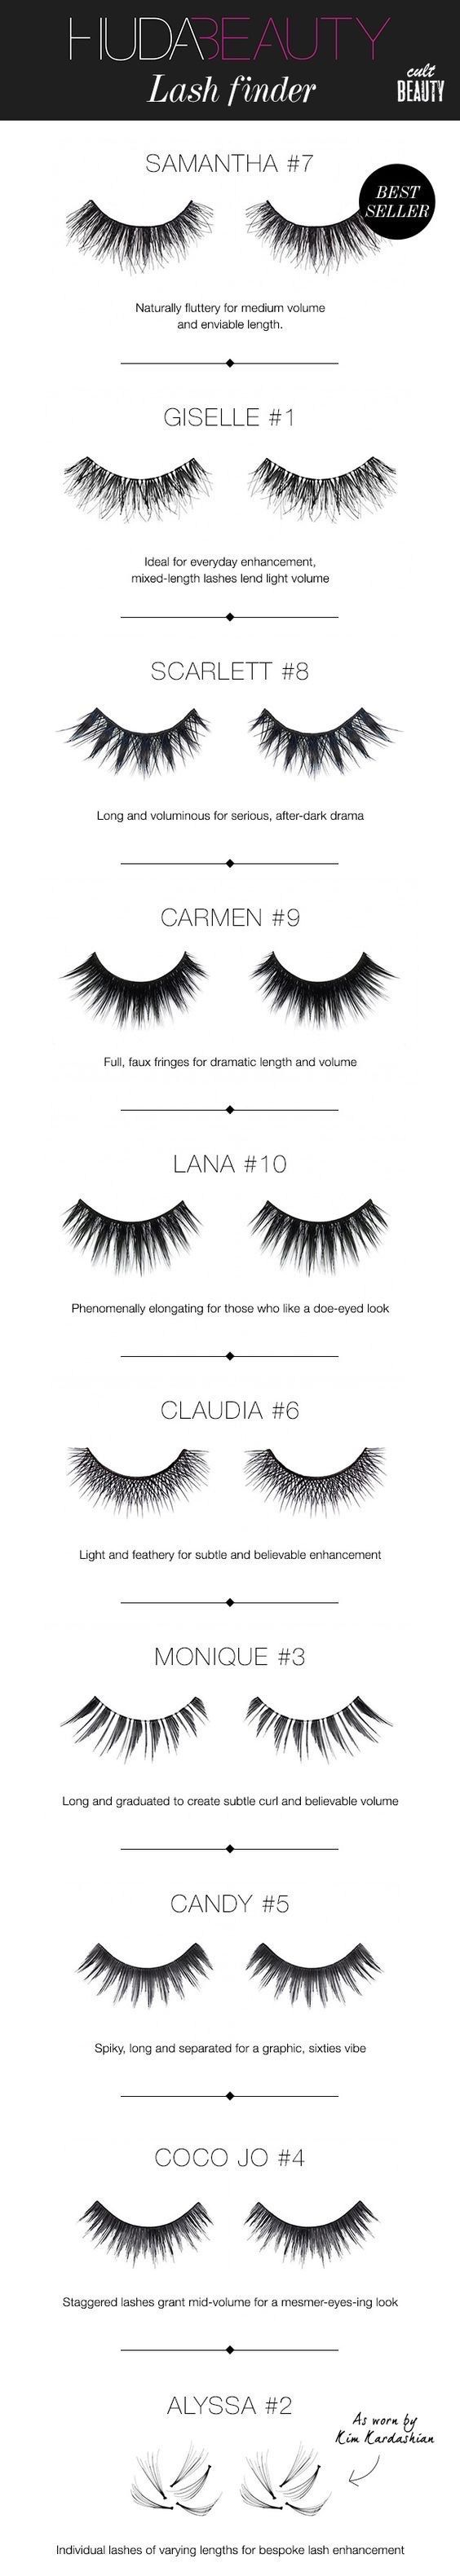 fa4bbc020f4 Huda Beauty Lashes to add to your makeup kit or collection. Perfect for  dramatic or natural looks / night out.